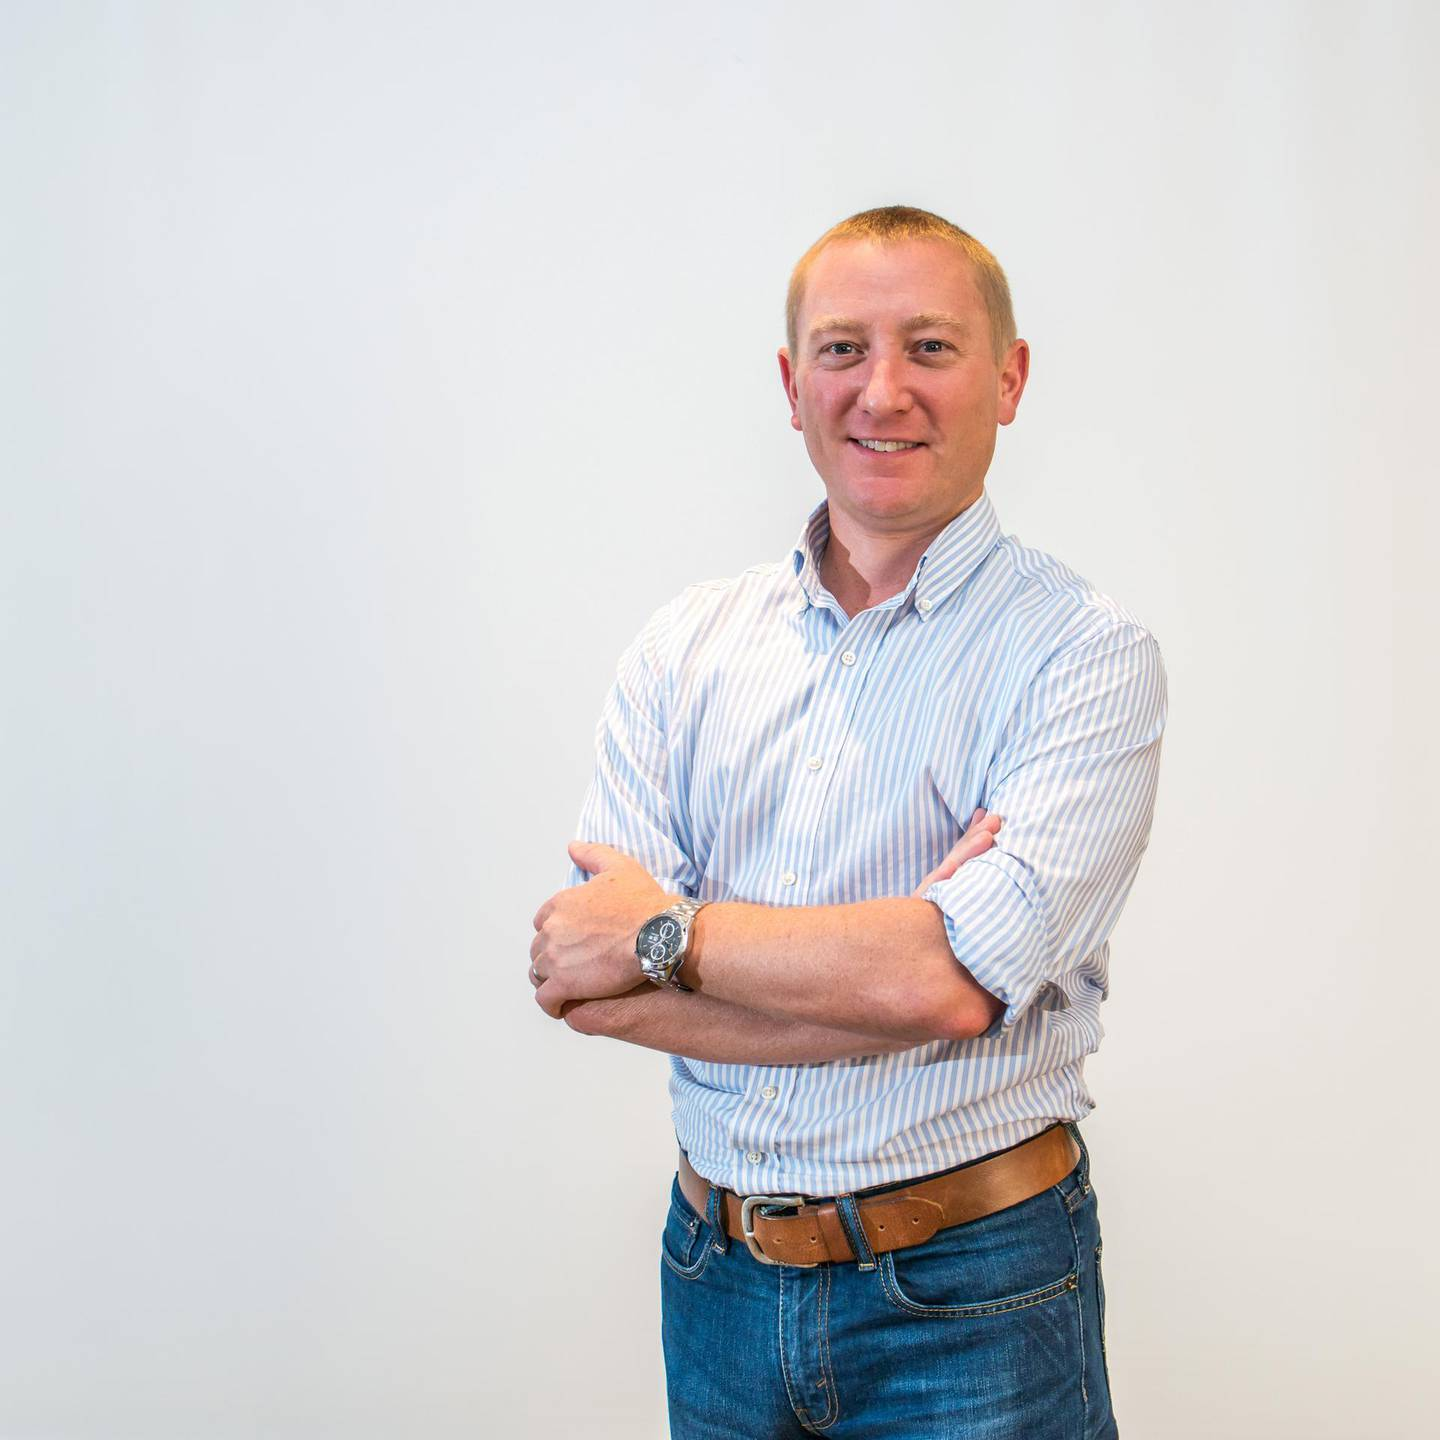 David Bell, a Gen Xer, started his investing journey in late 2013 after meeting a financial adviser in the UAE. Courtesy David Bell